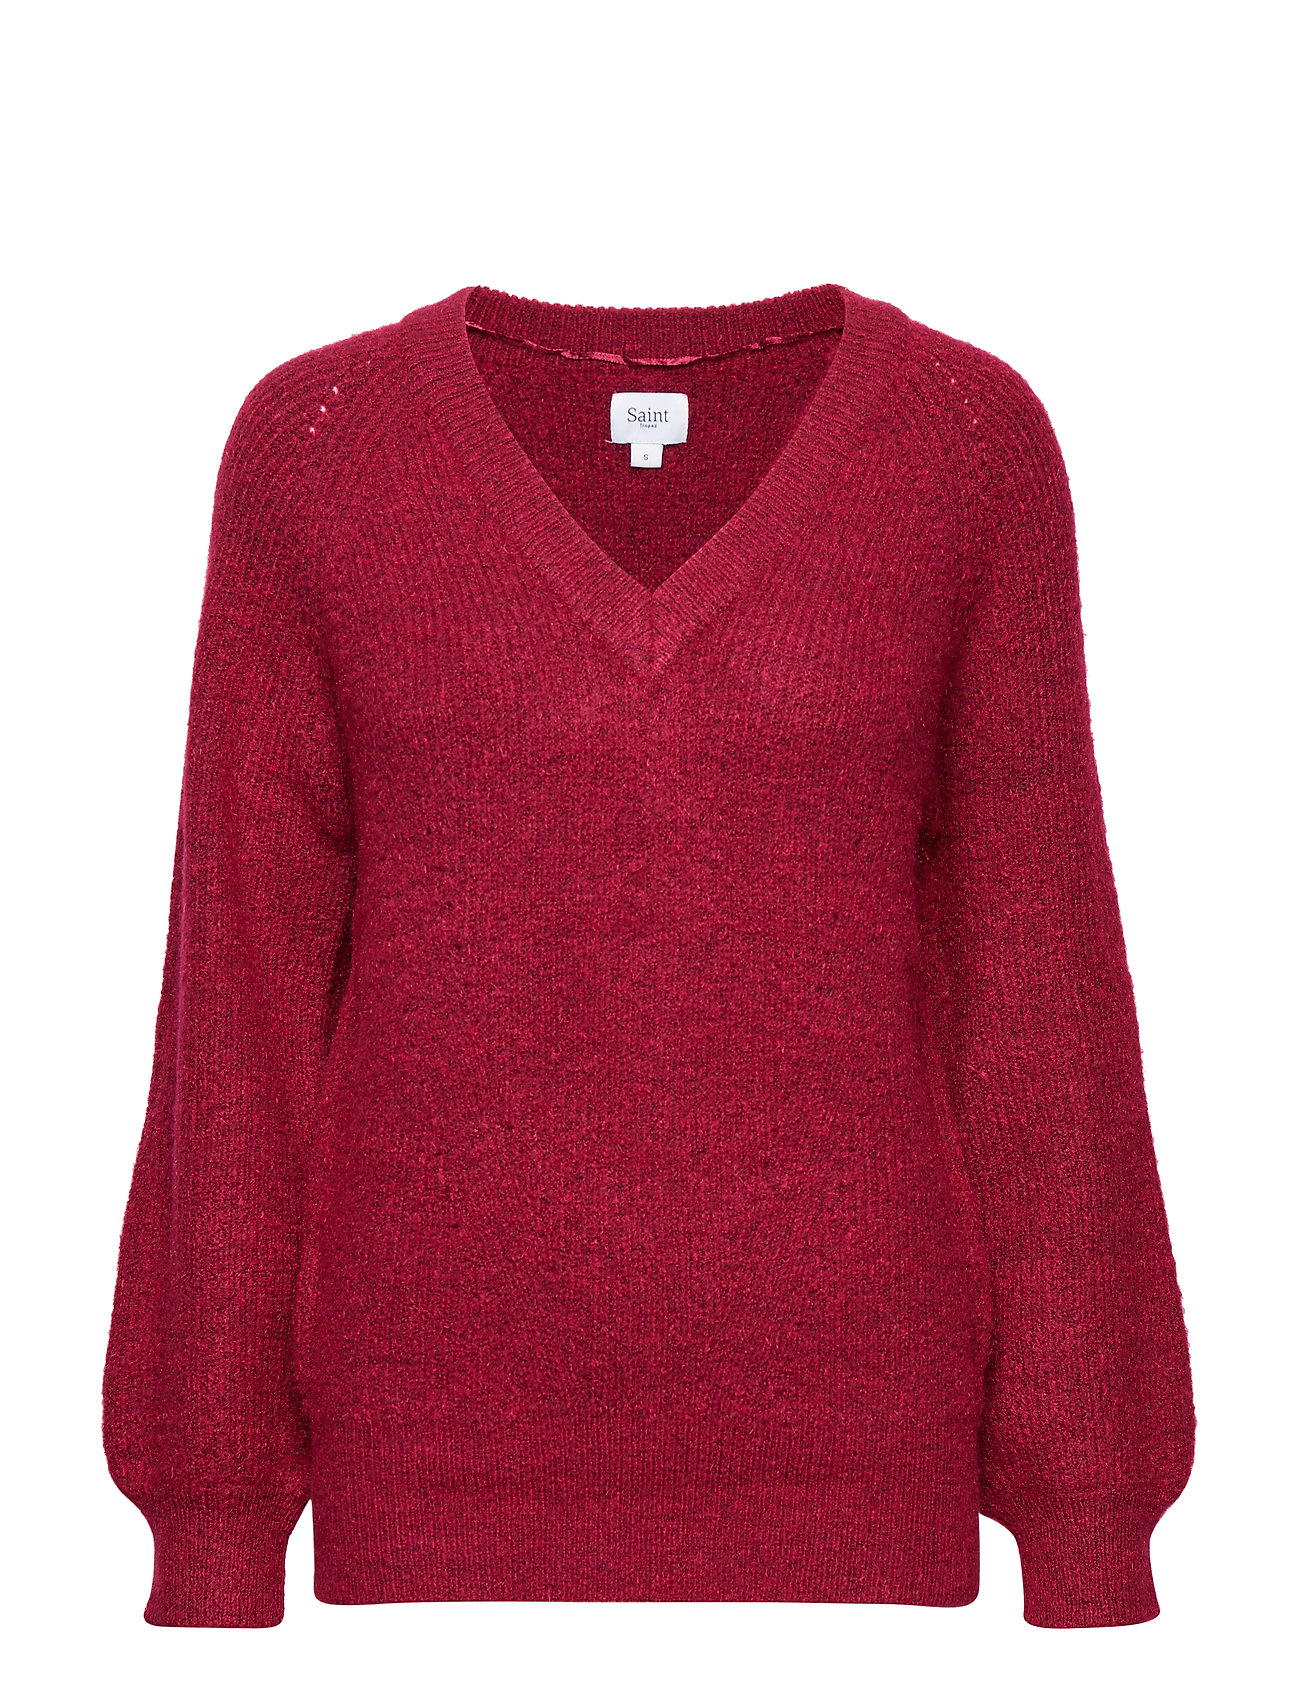 Saint Tropez Knit Sweater 458225175